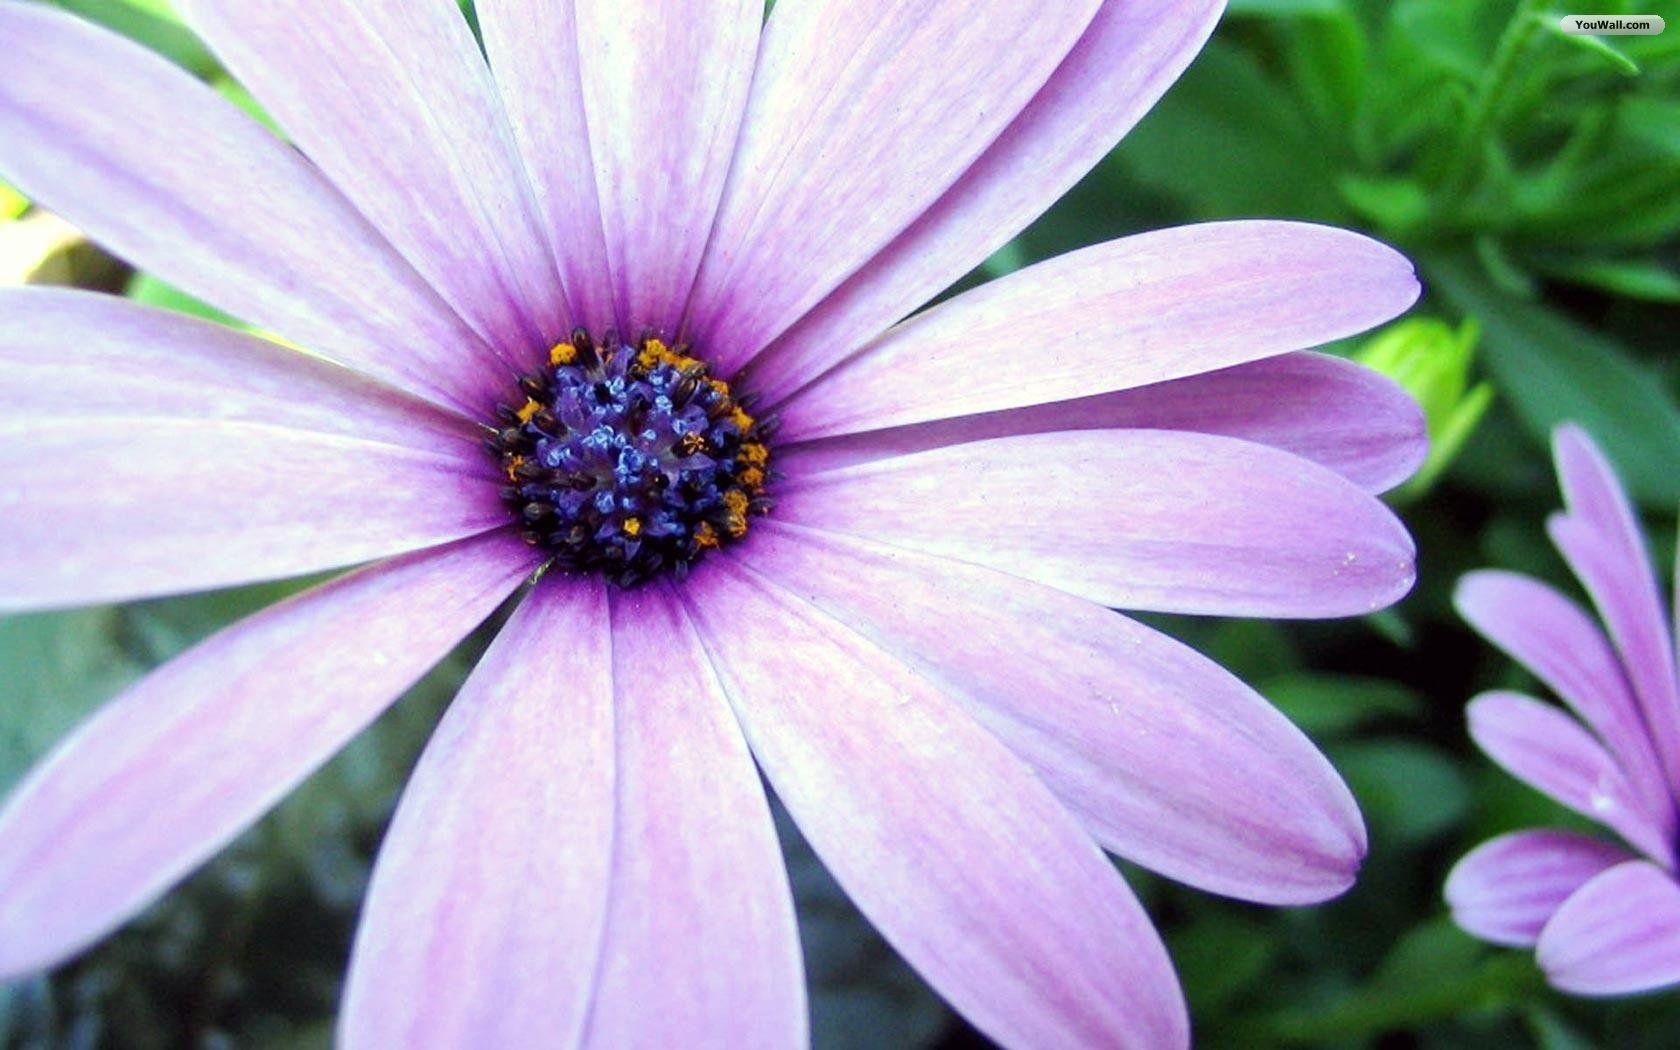 Pretty flower backgrounds wallpaper cave wallpapers for pretty flower backgrounds for desktops mightylinksfo